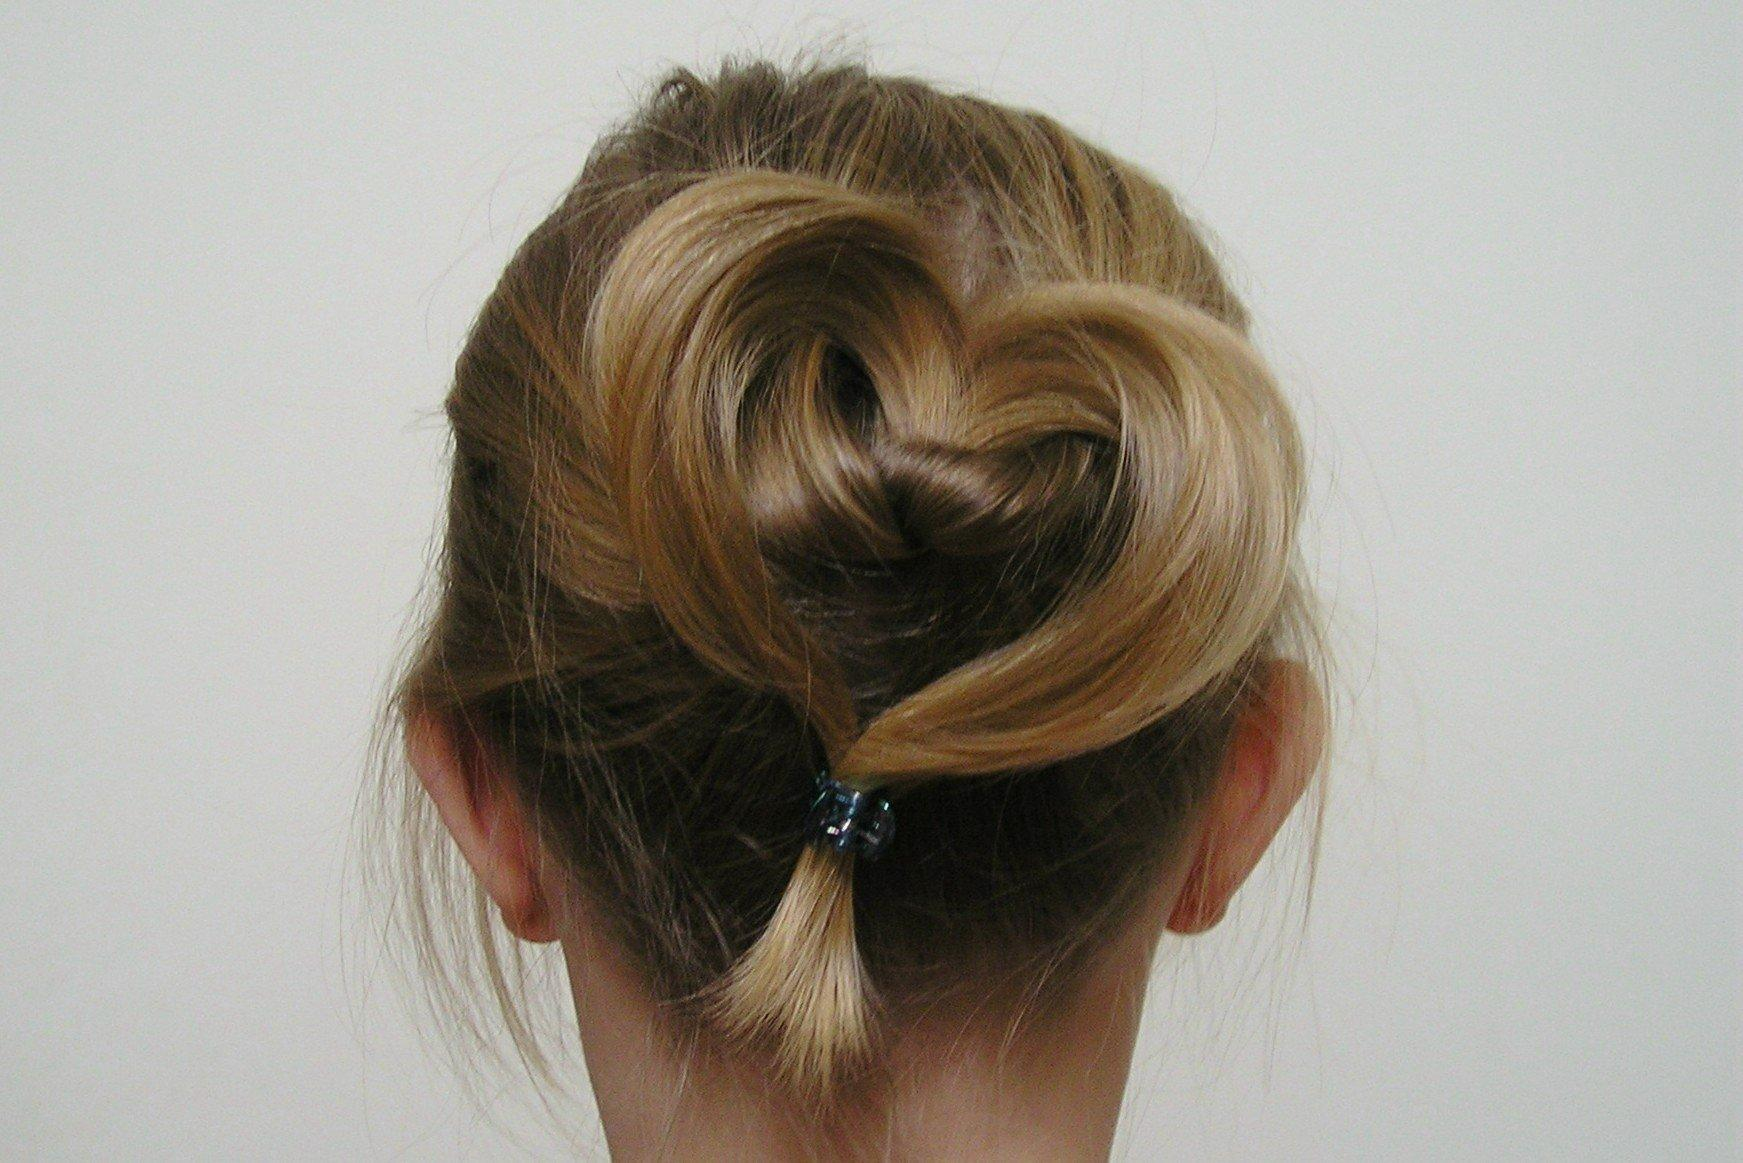 14 Adorable Heart Shaped Hairstyles For Young Ladies